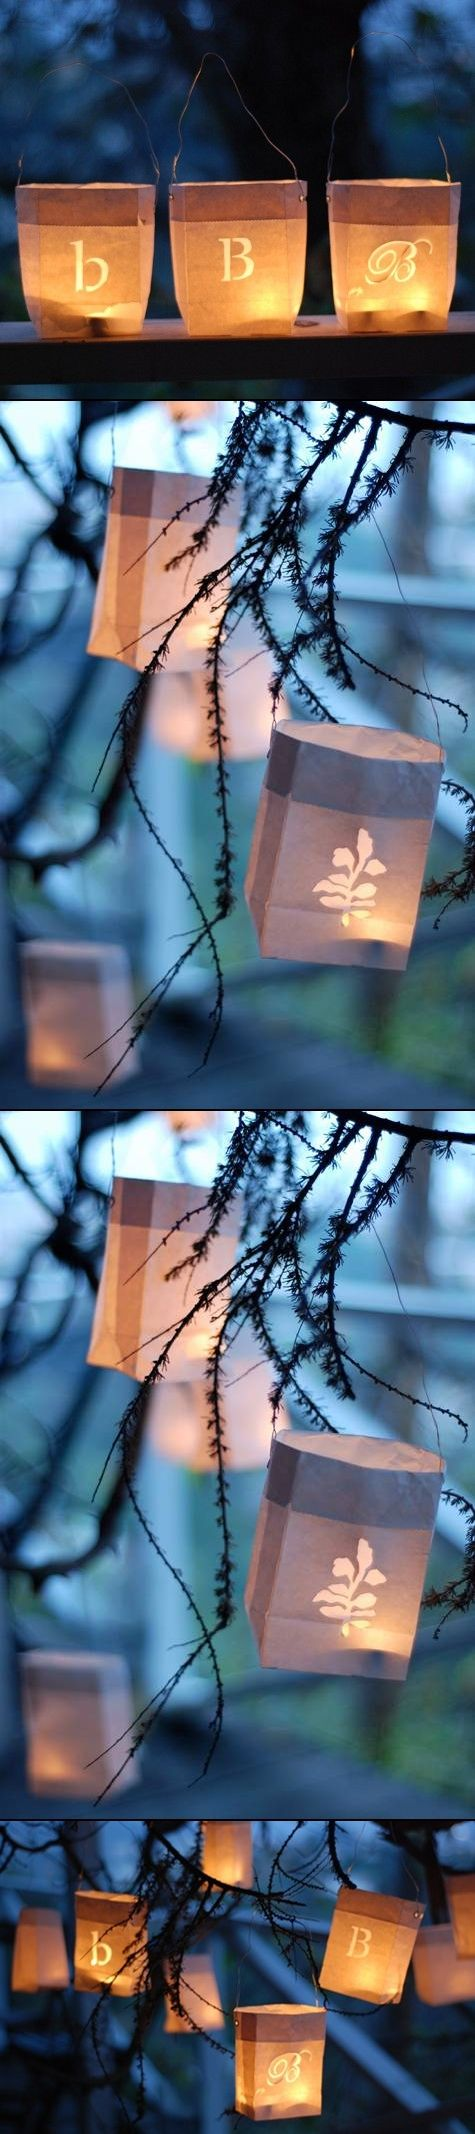 DIY- Paper bag lanterns with Candle Impressions tea lights! This would be perfect for an outdoor or country-chic wedding